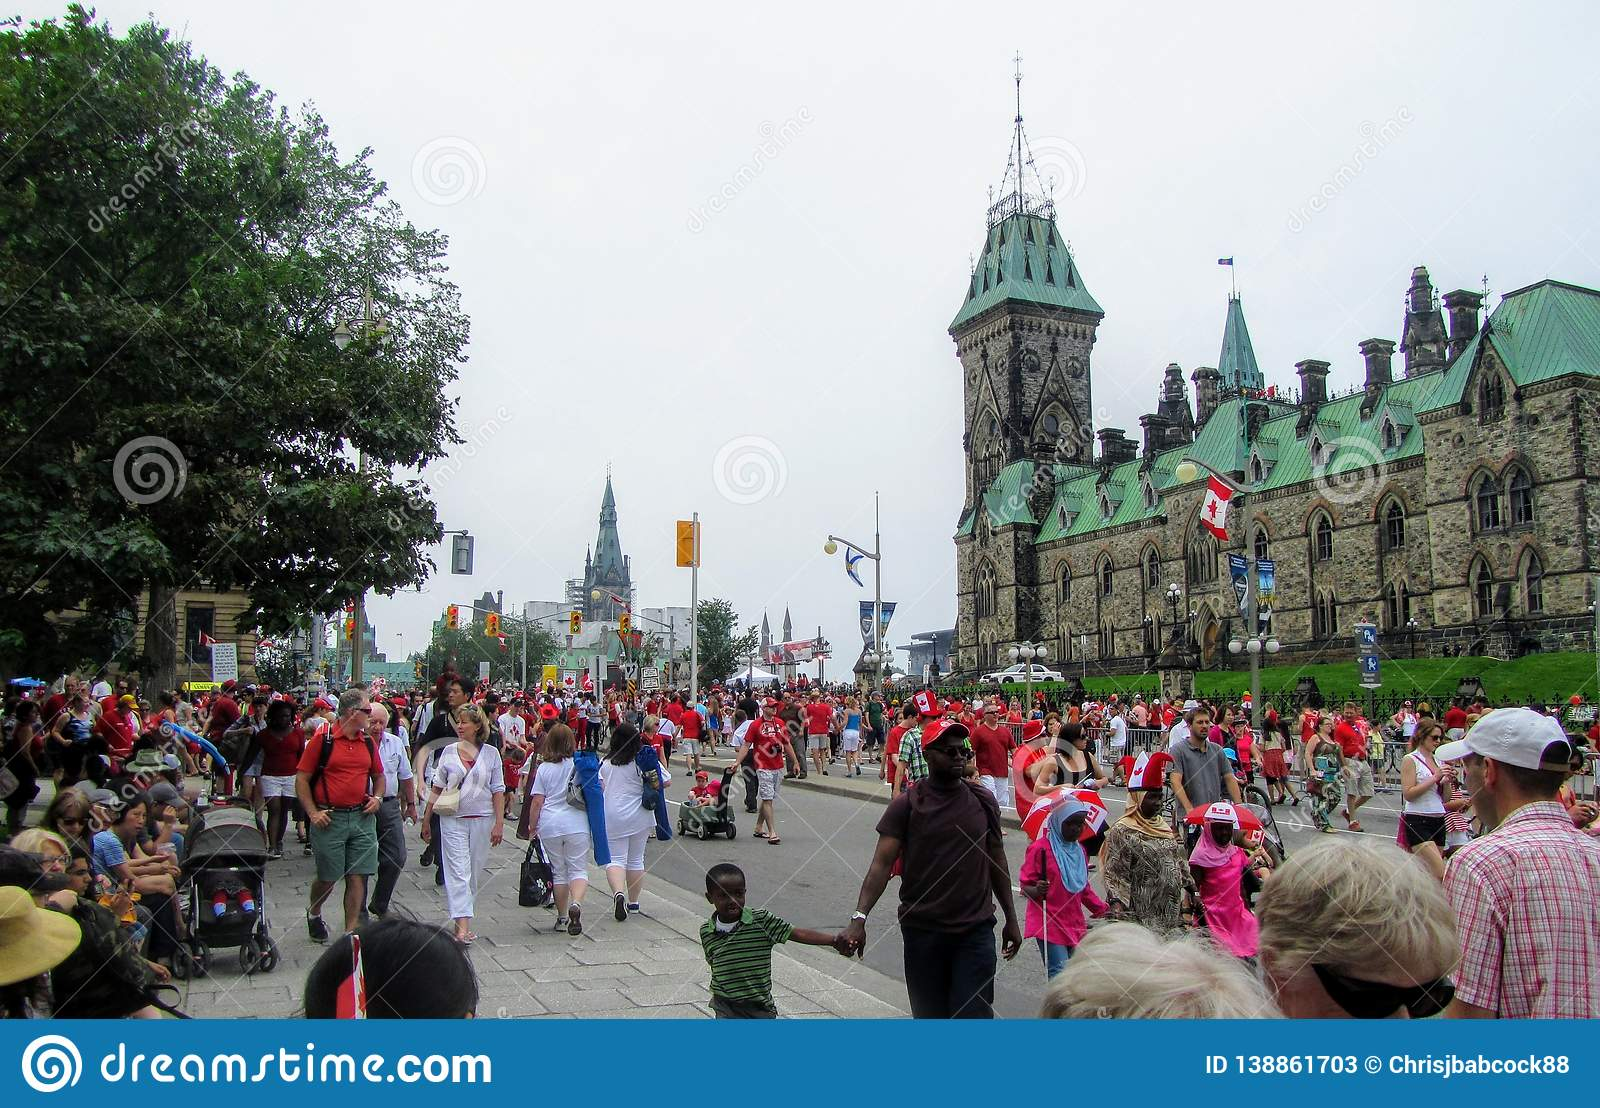 The streets of downtown Ottawa are packed with thousands of families and multicultural people celebrating Canada Day